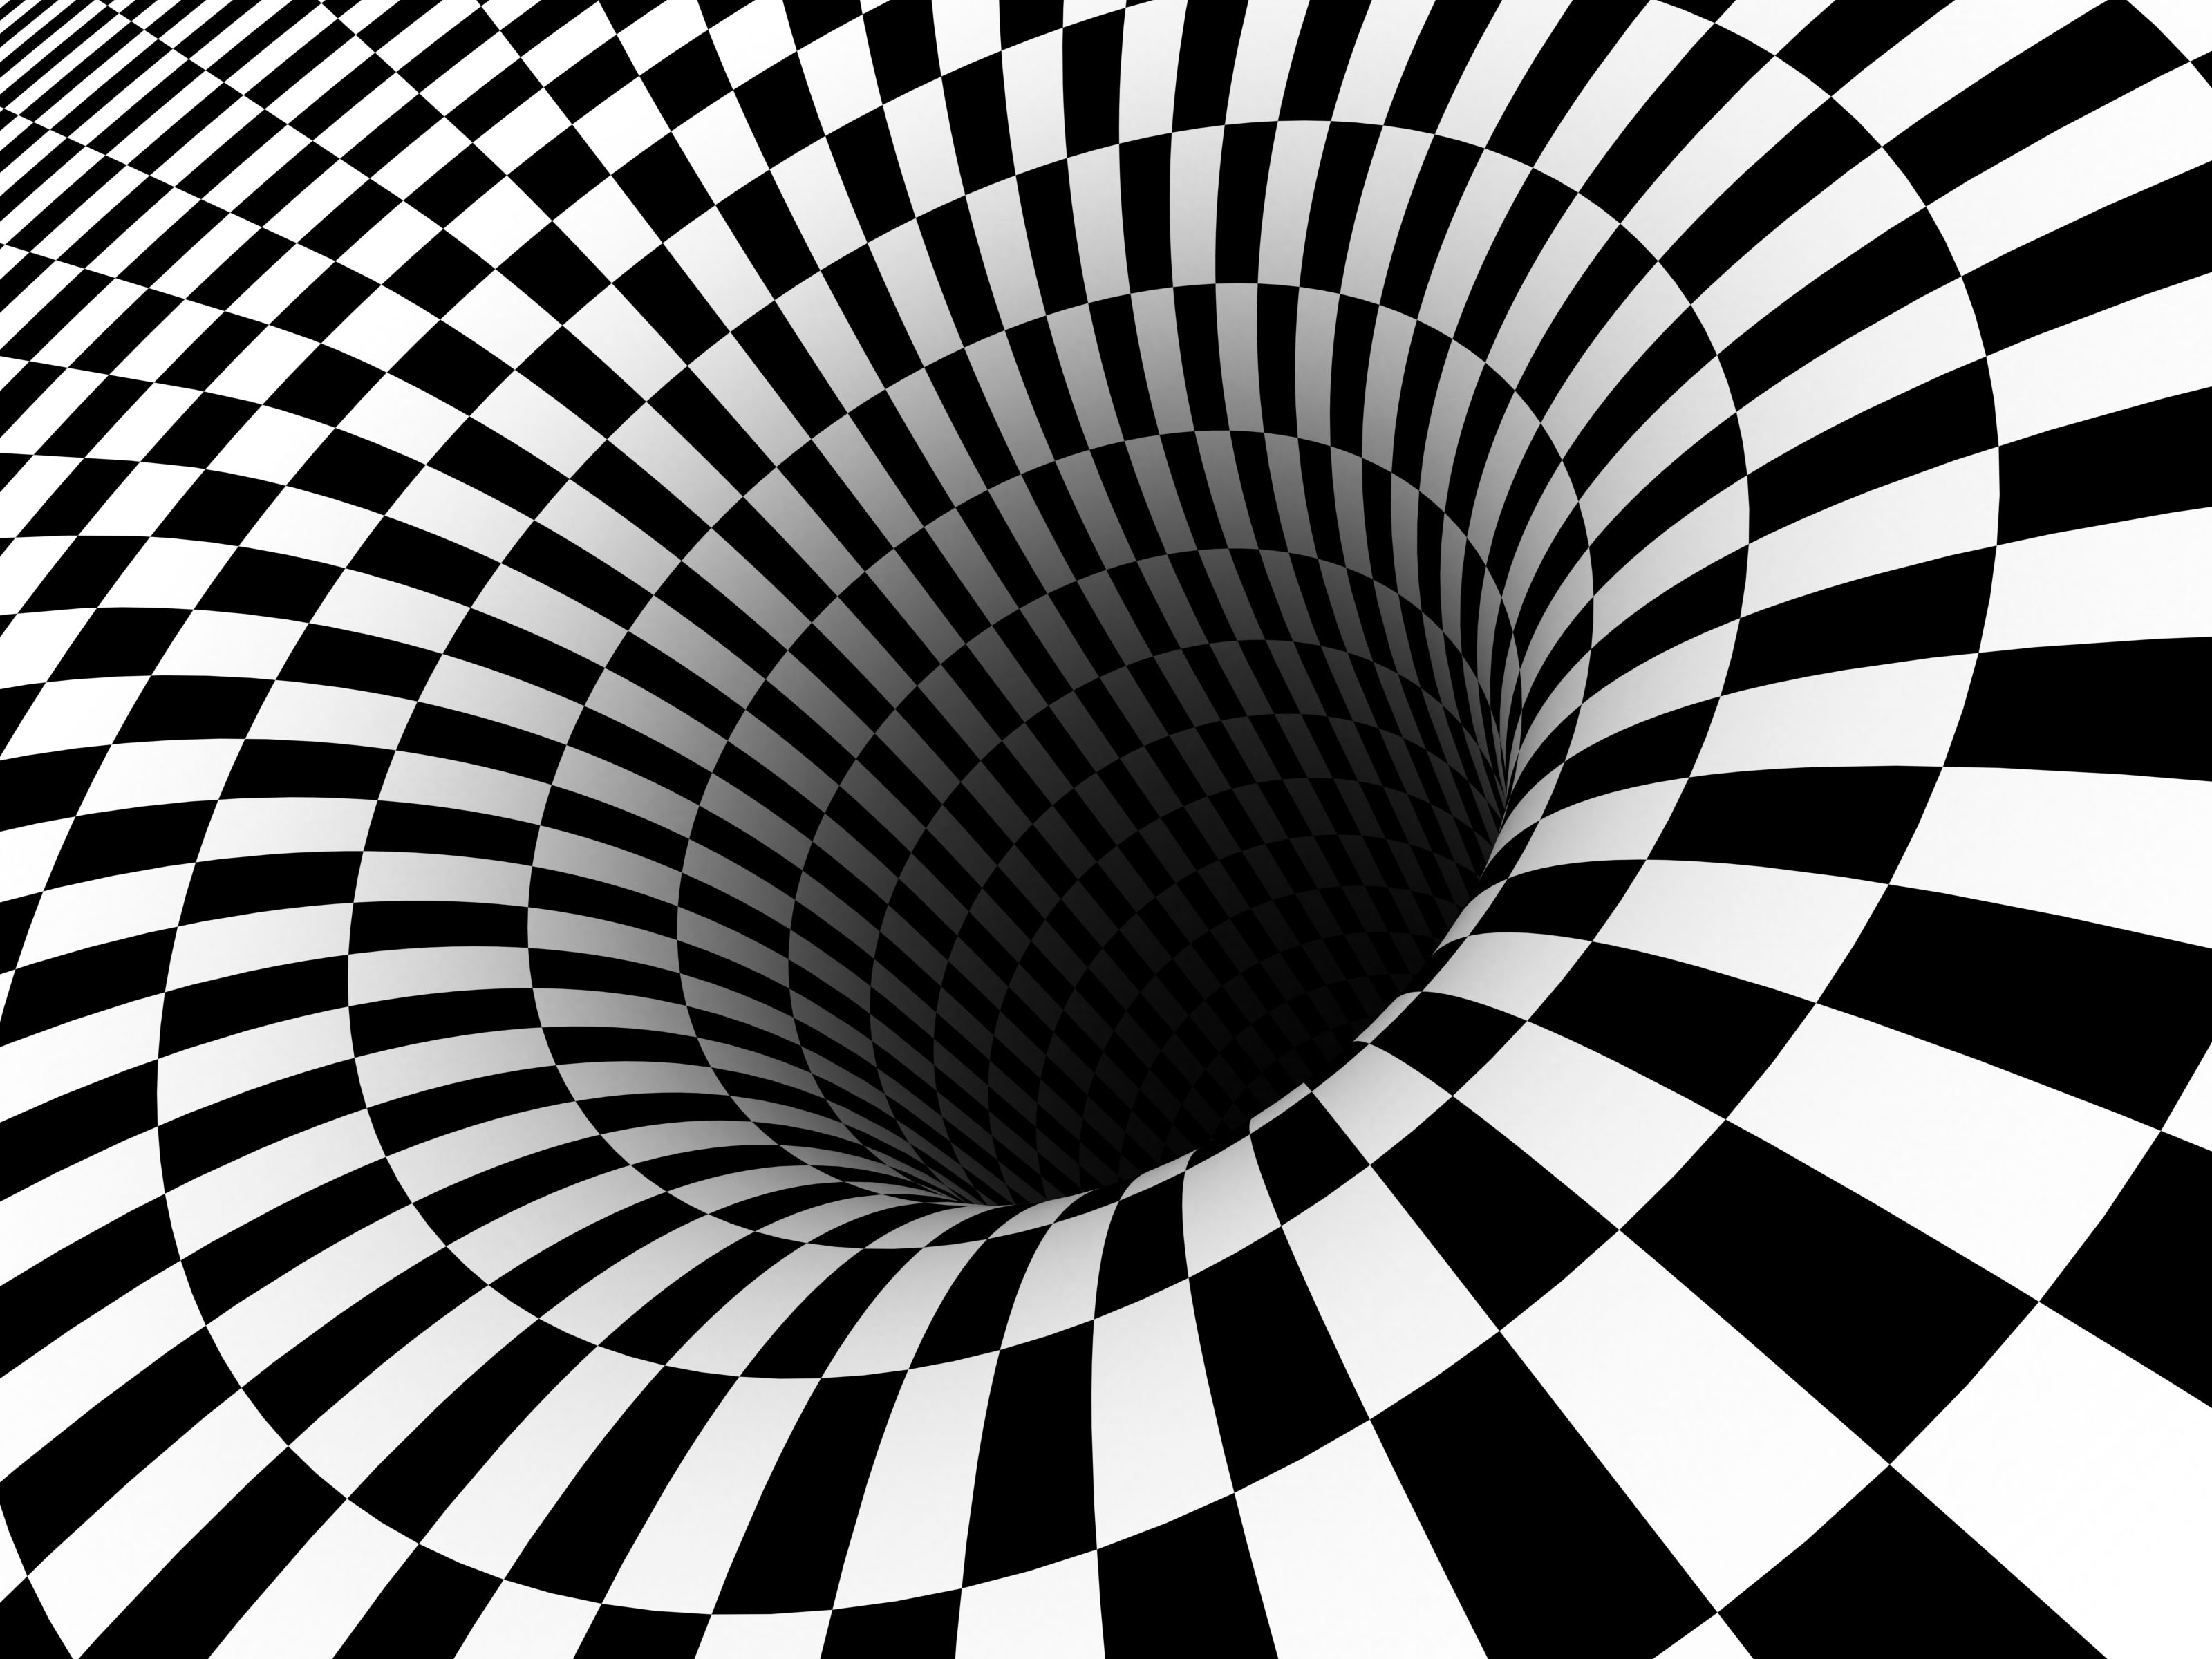 HQ Illusion Wallpapers | File 556.8Kb